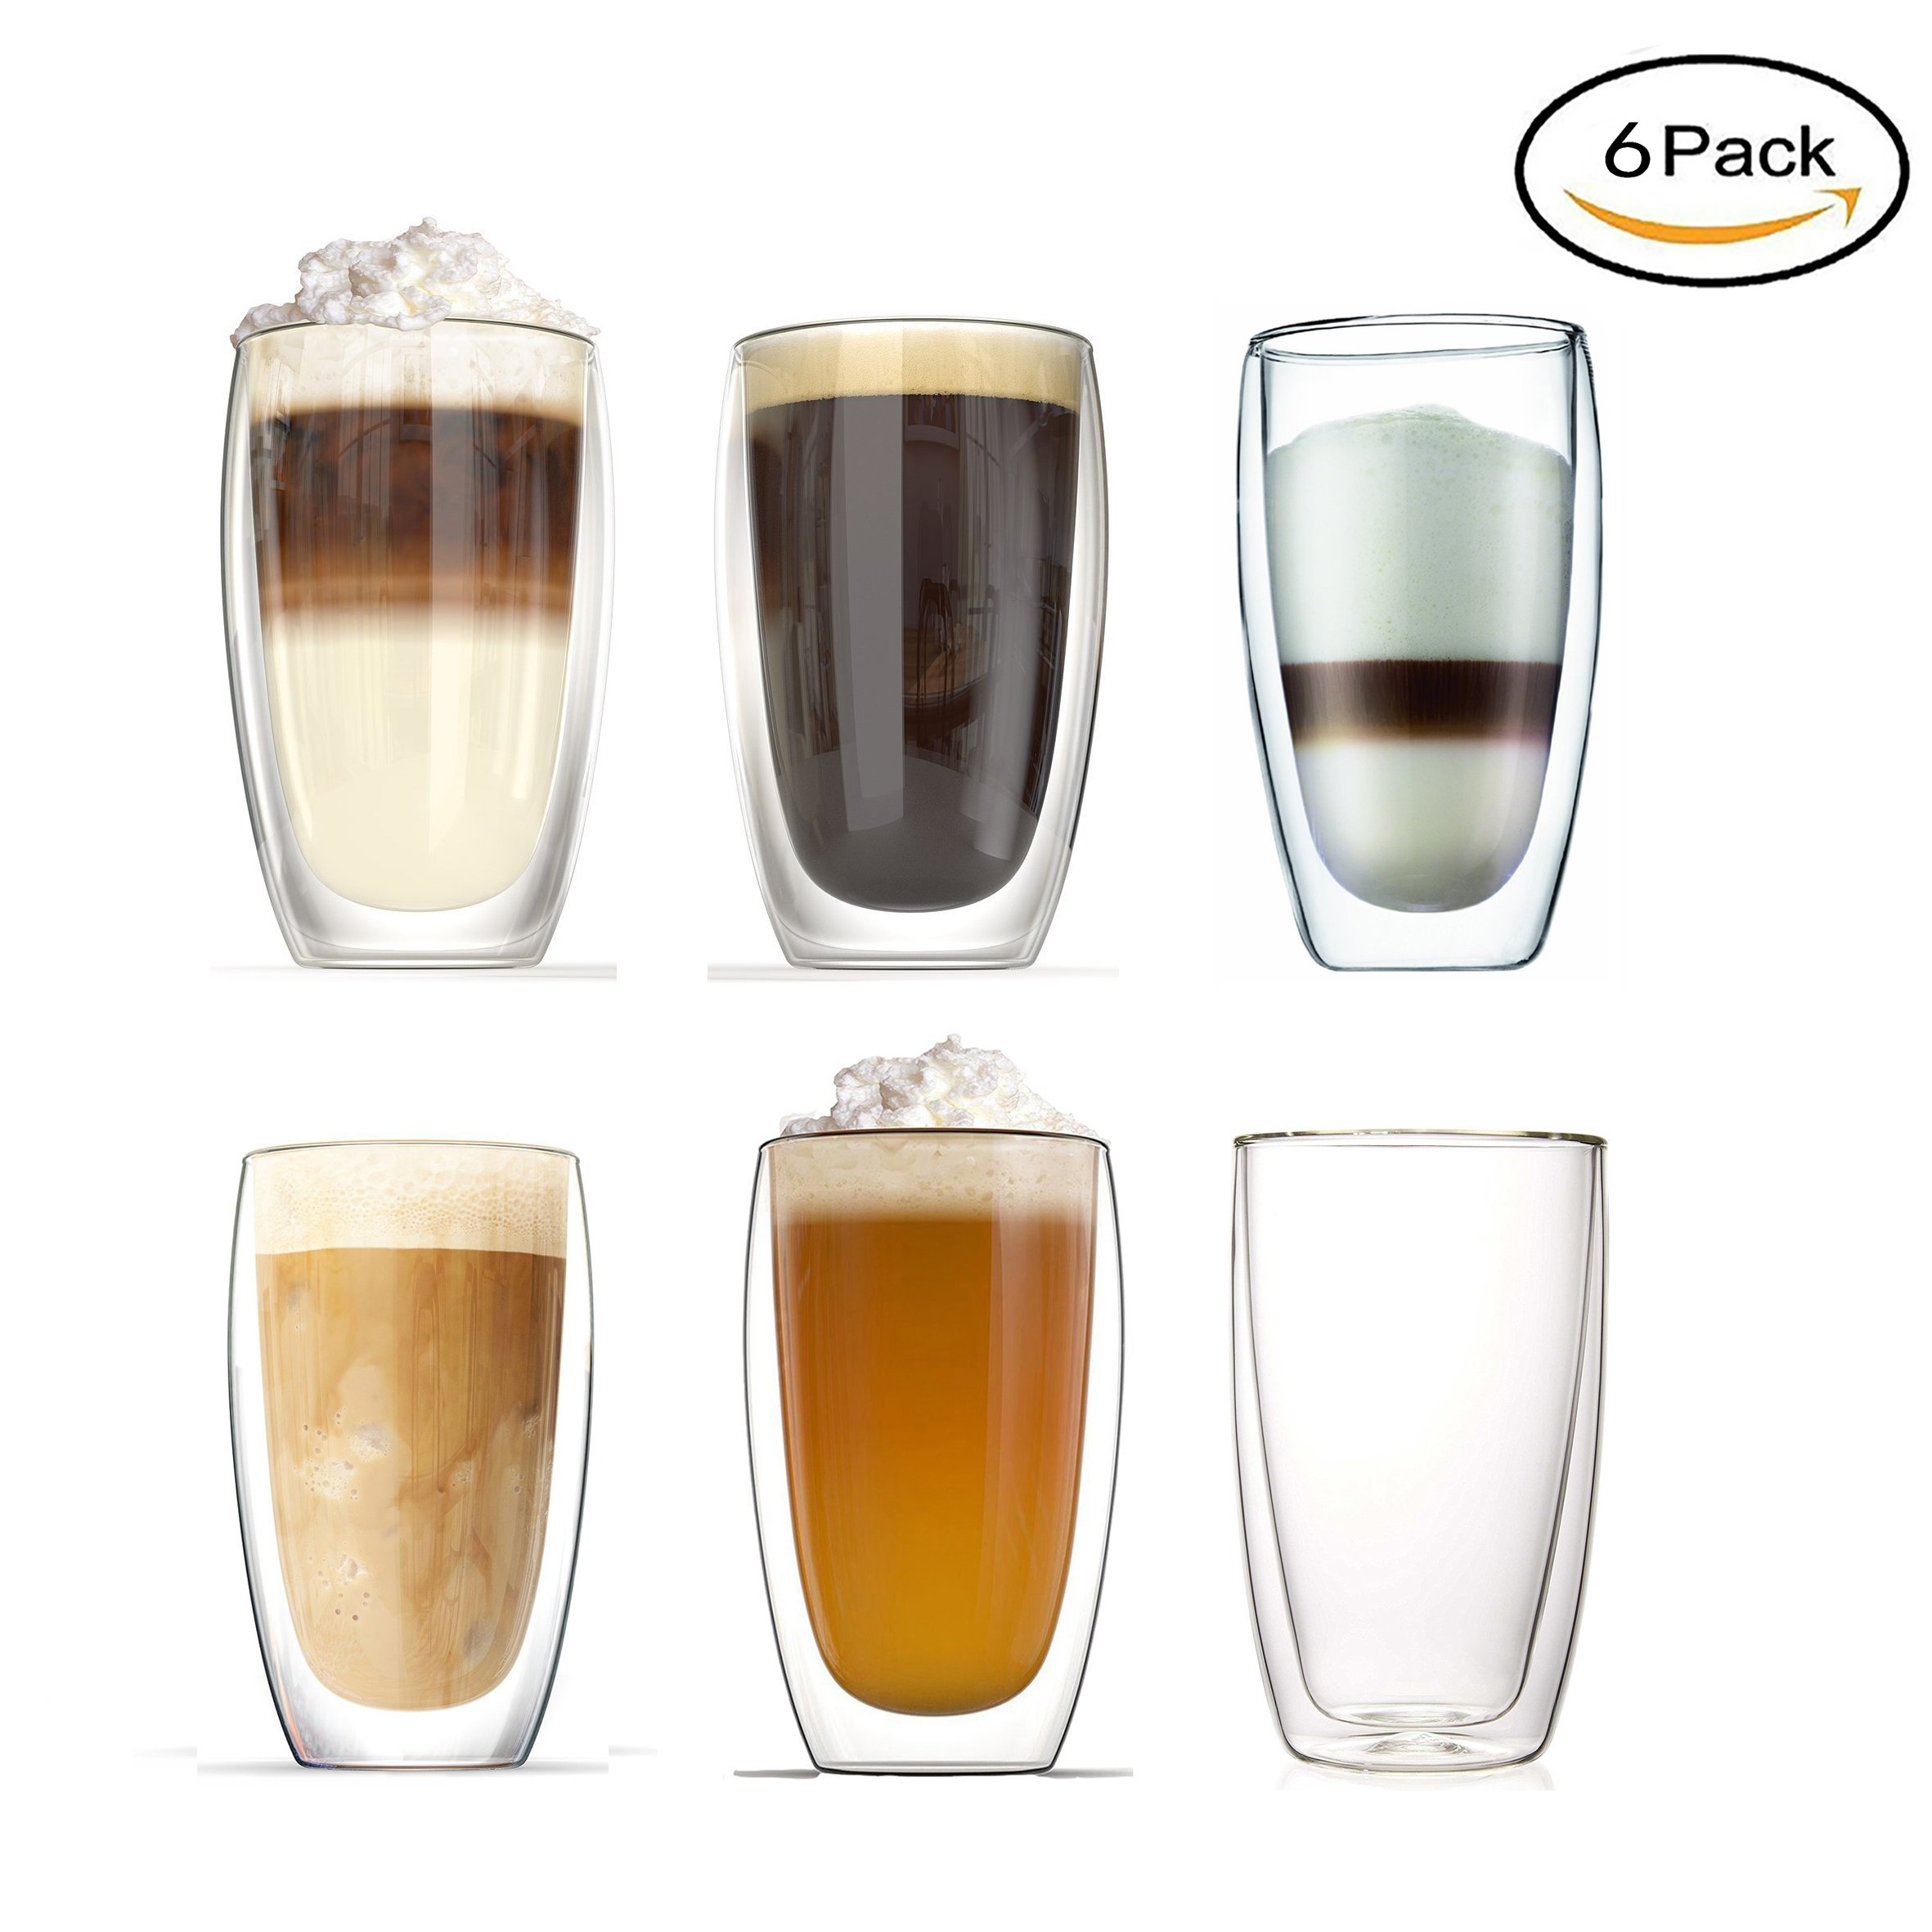 Heat resistant double-layer Thermo Glass Latte Cup / coffee cup / Tea Mug 450ml,8 oz,Set of 6